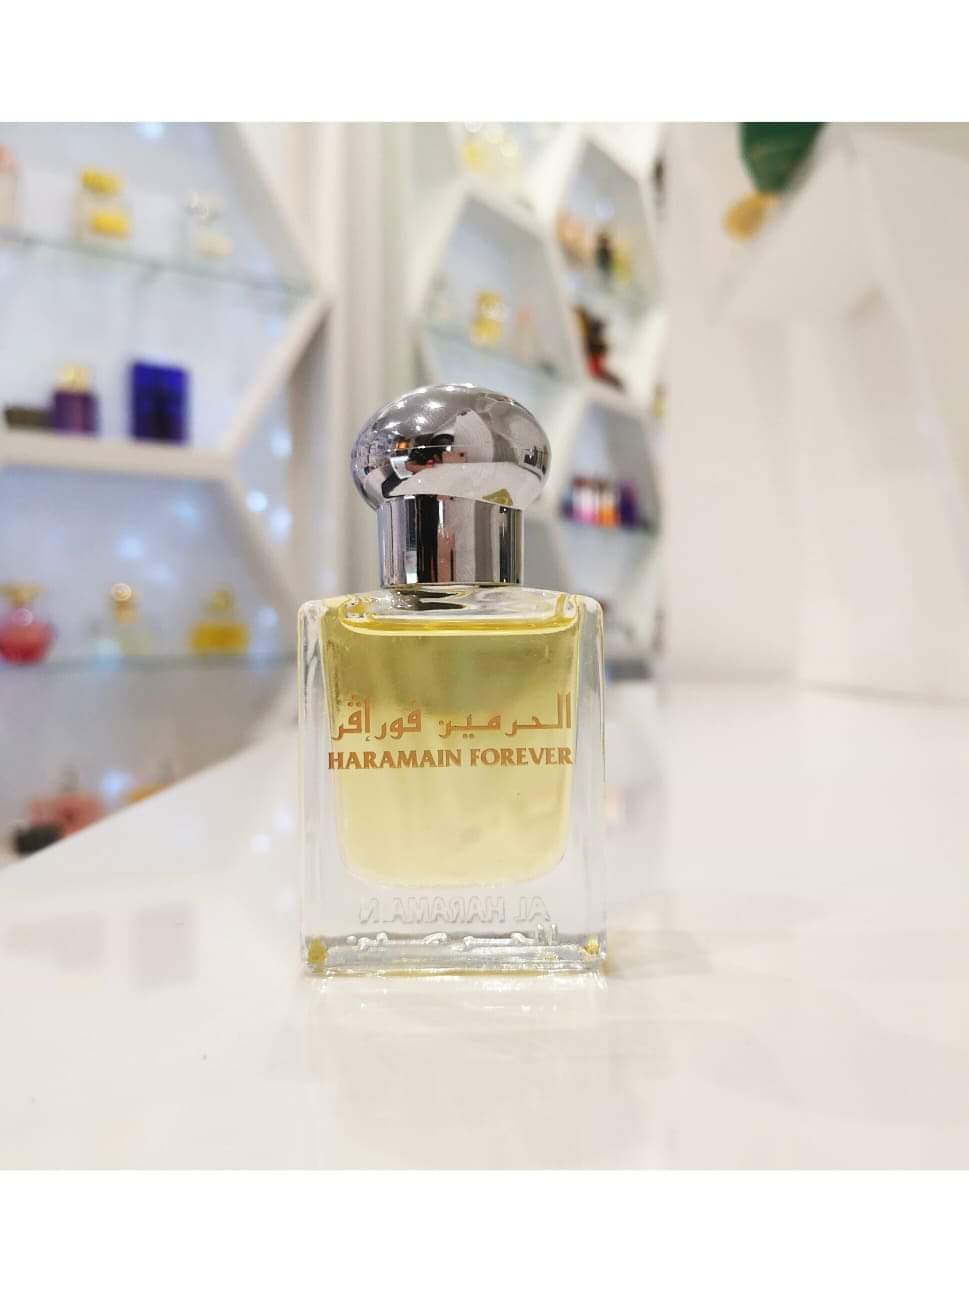 Al Haramain Forever oil 15ml